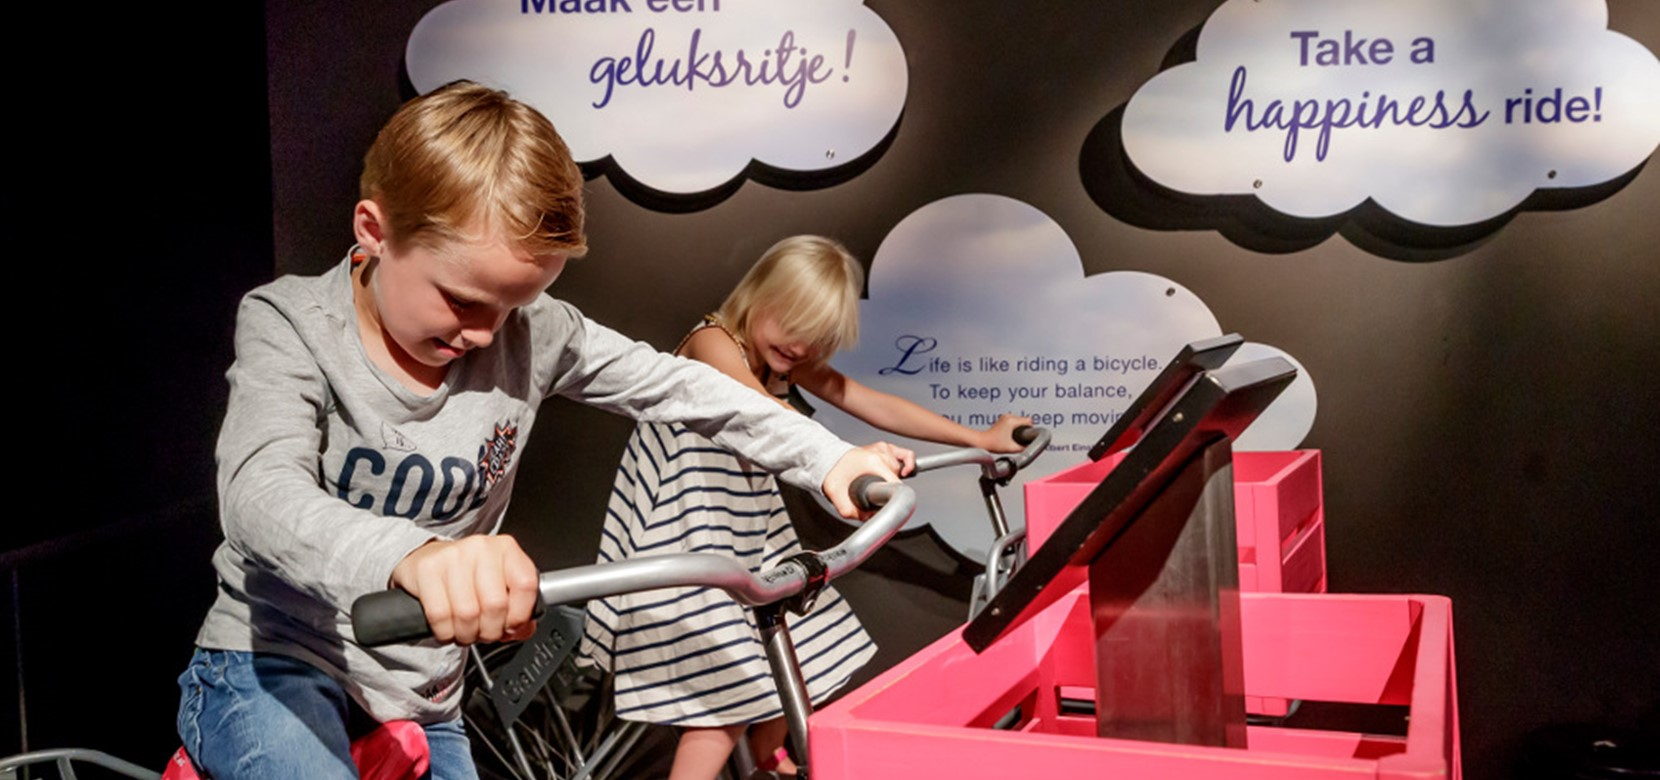 BODY WORLDS Amsterdam Discount Tickets